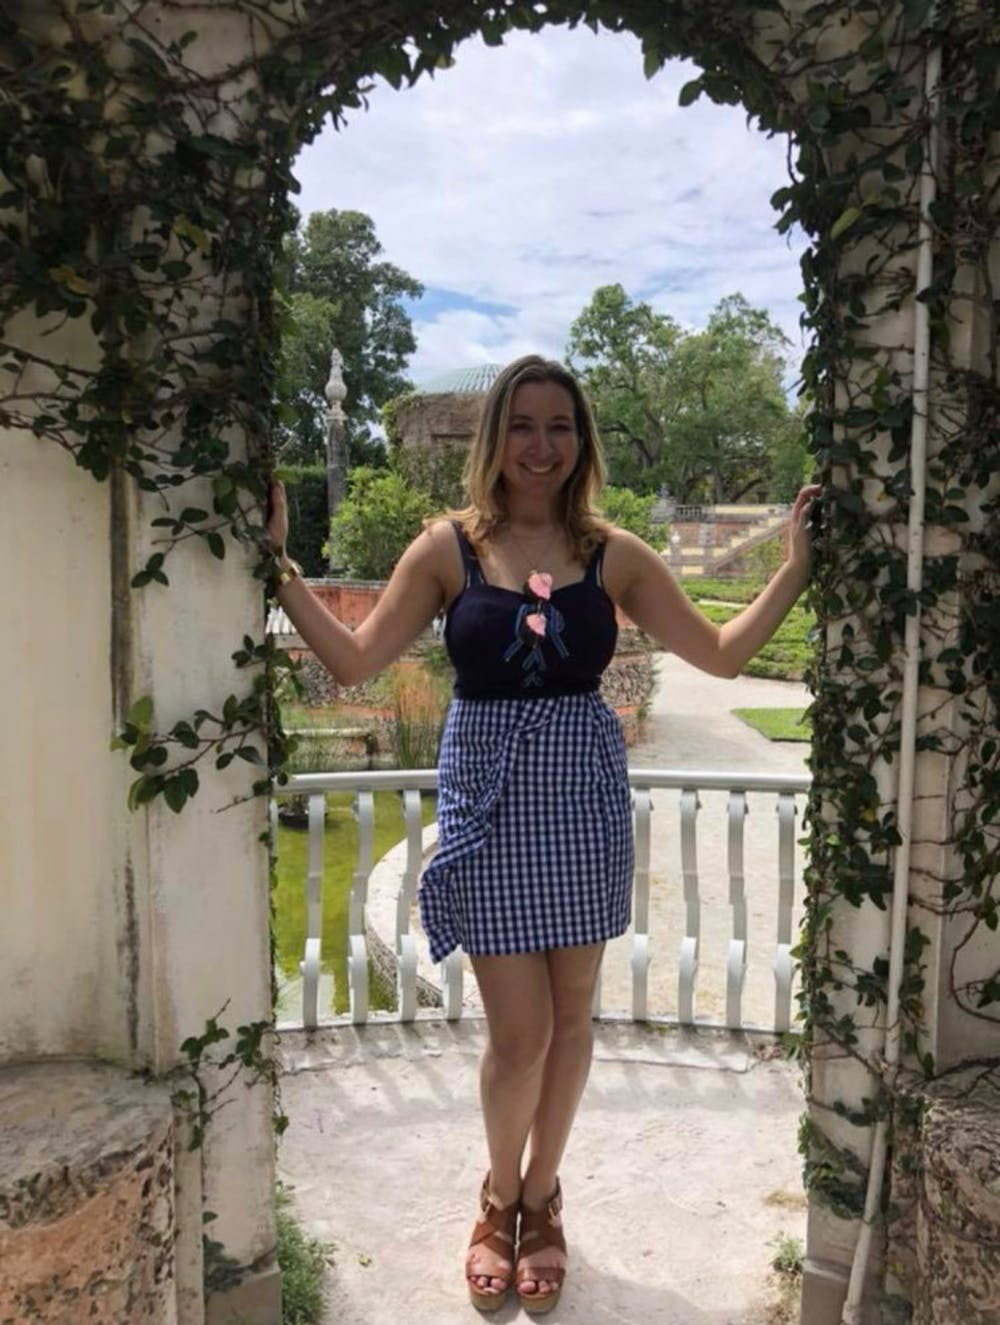 <p>Sophia Visent, a 22-year-oldUF environmental management senior, died by suicide last week. Her friends will hold a vigil to remember her 9 p.m. Wednesday on the Plaza of the Americas. A GoFundMe page is raising money for funeral expenses.</p>